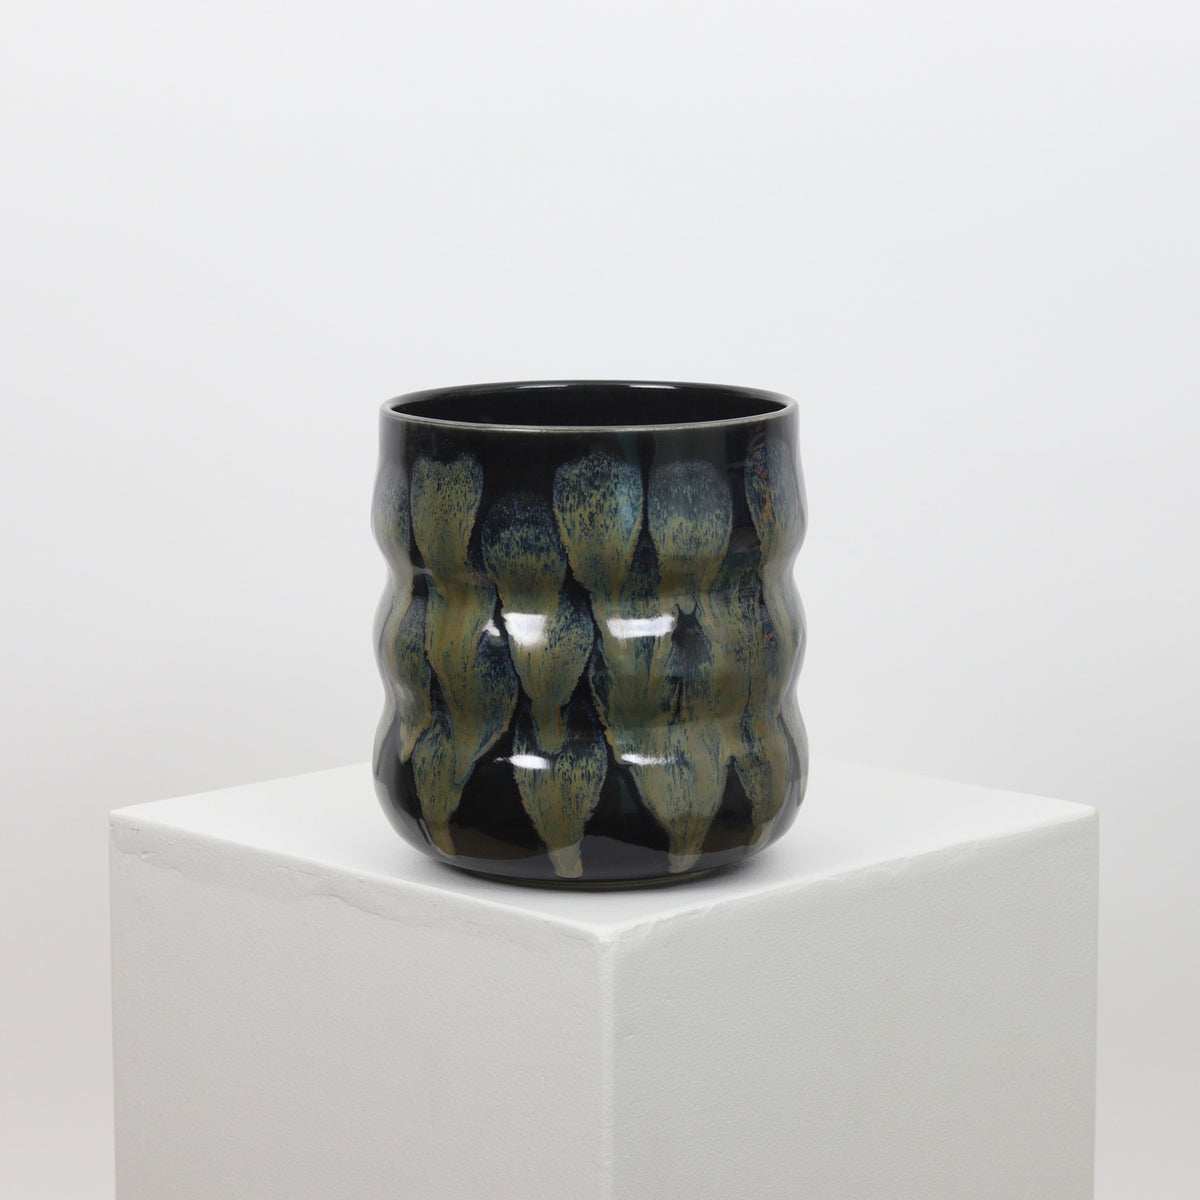 21096 - Black with Metallic Accents - Squiggle Planter